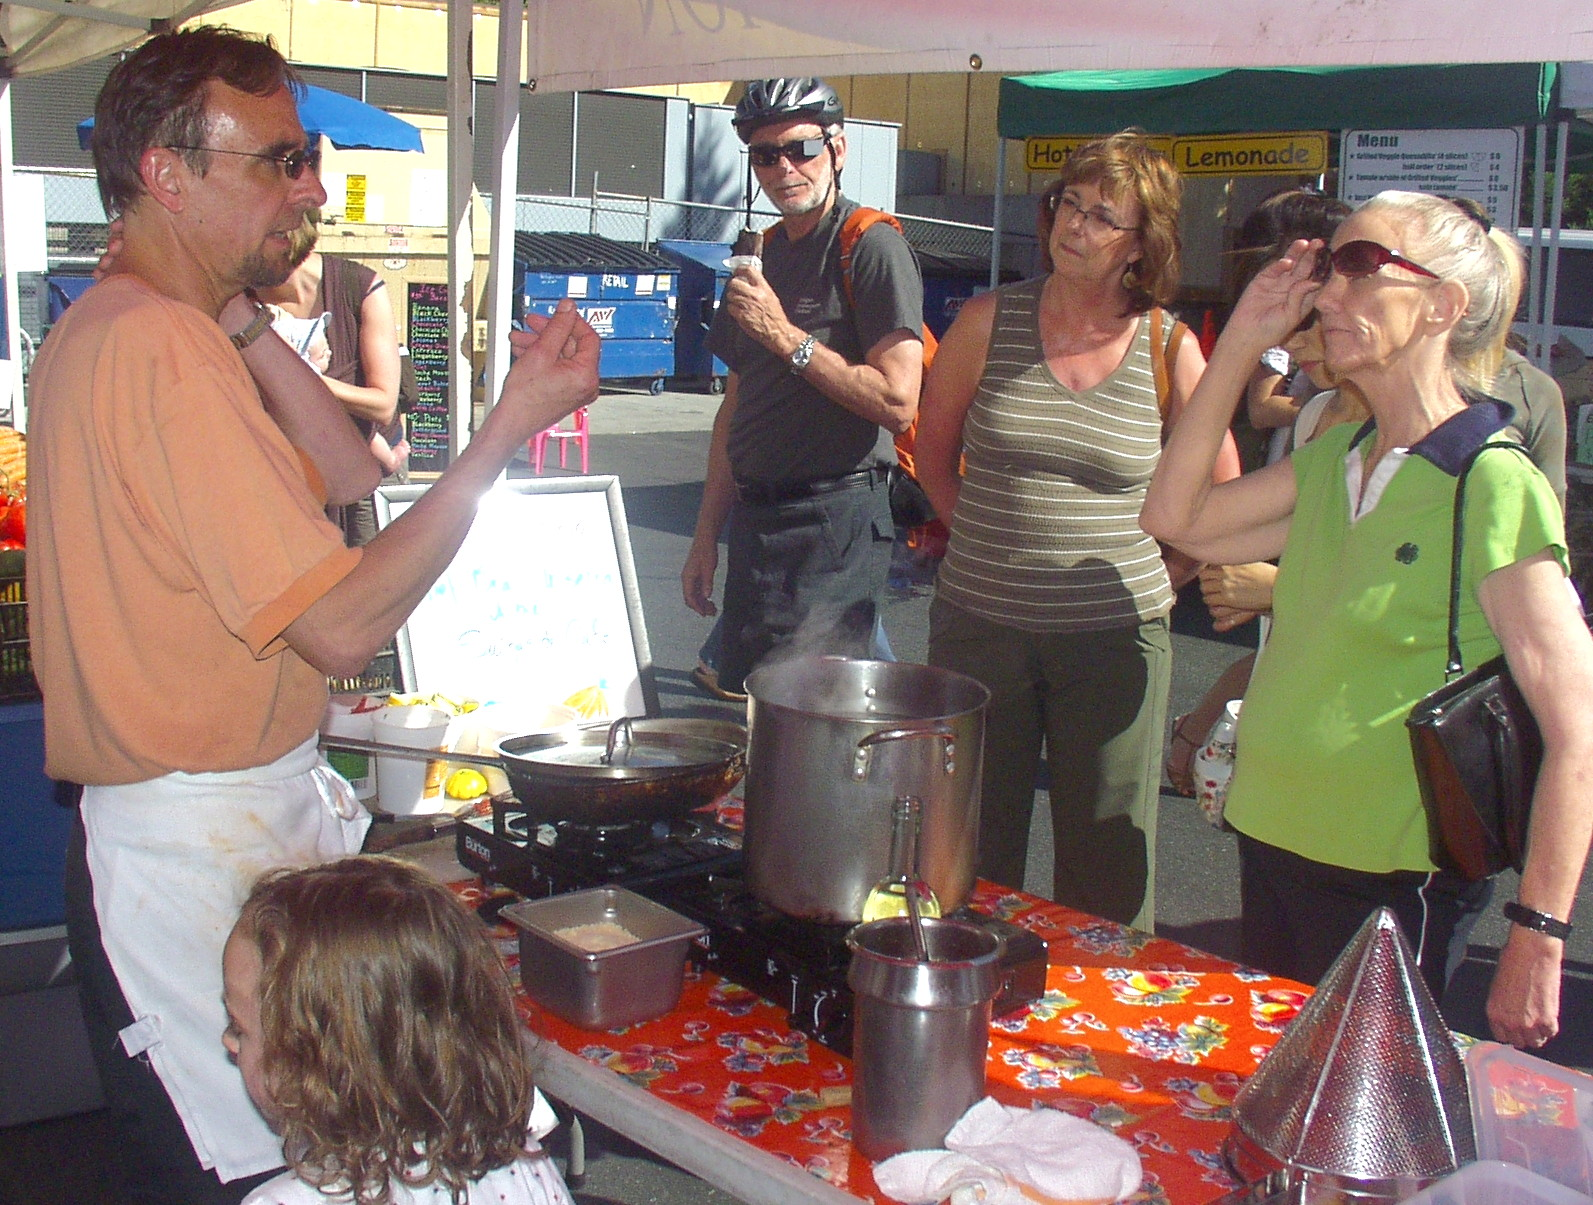 Chef Brad Inserra of Swingside Cafe at his Wallingford Farmers Market cooking demo in 2009. Photo copyright 2009 by Zachary D. Lyons.